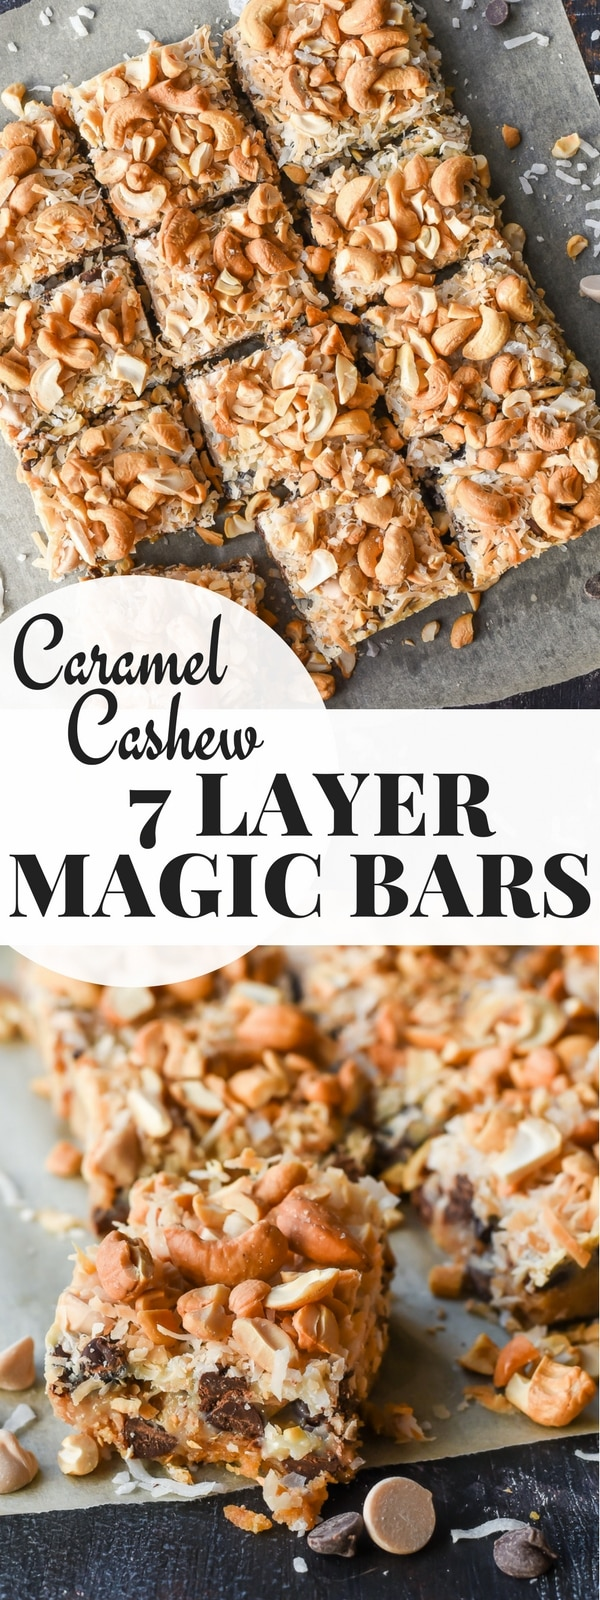 These easy 7 Layer Magic Bars are loaded with layers of graham cracker, chocolate, caramel, coconut, and cashews for a rich treat everyone will love!